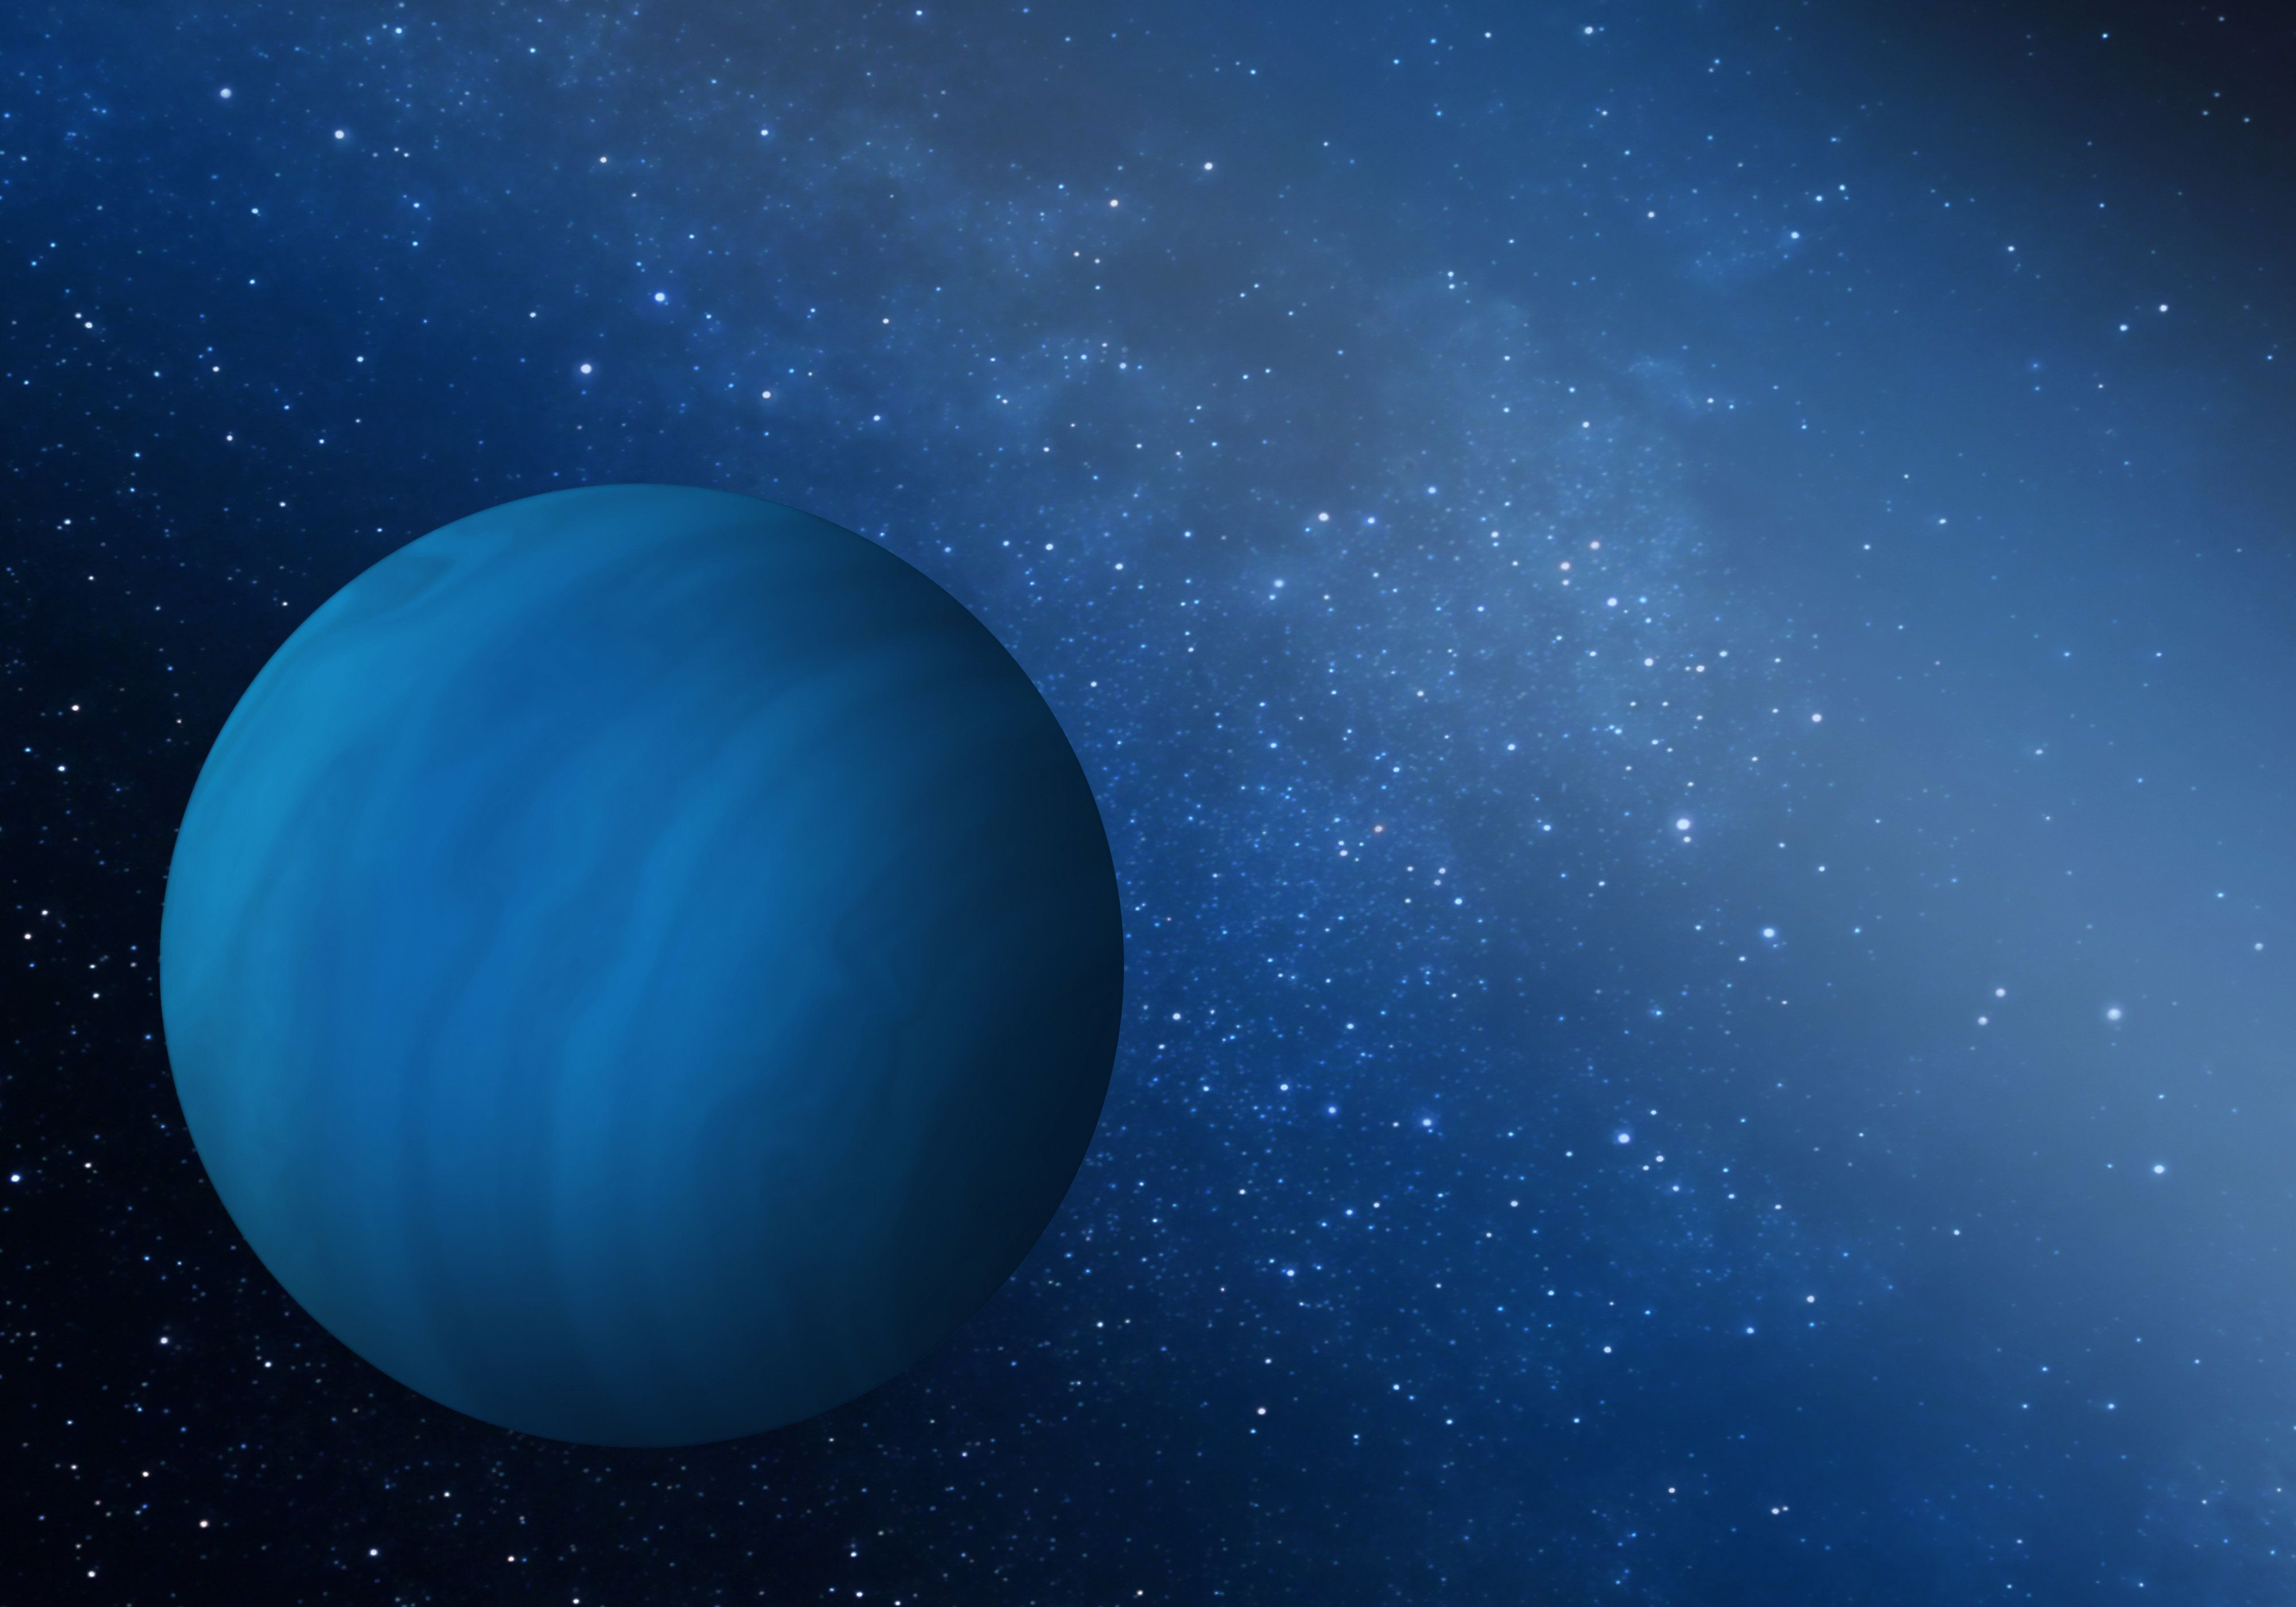 Artist's impression of the missing gas giant planet that may have been ejected from the early solar system.